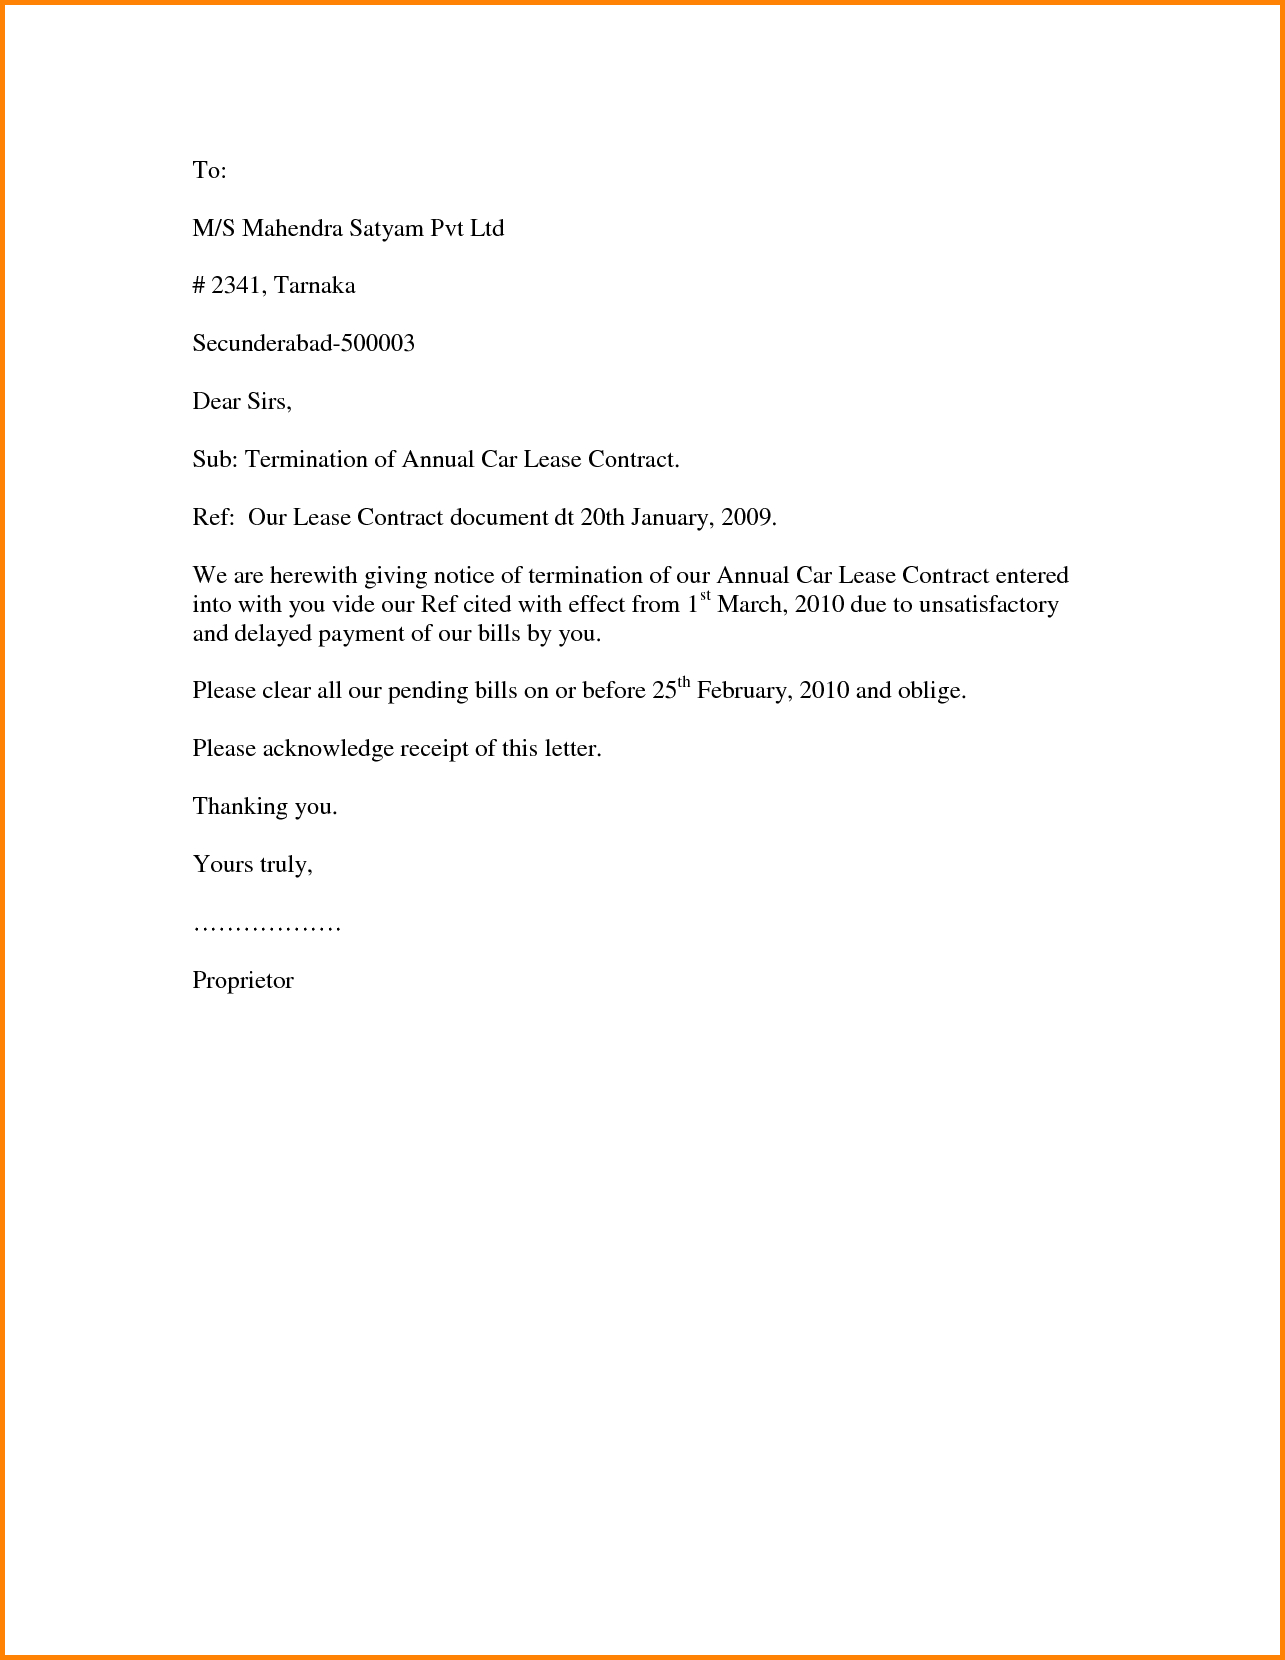 Fire Employee Letter Template - How to End Letters How to End A Resignation Letter Fancy Resume How